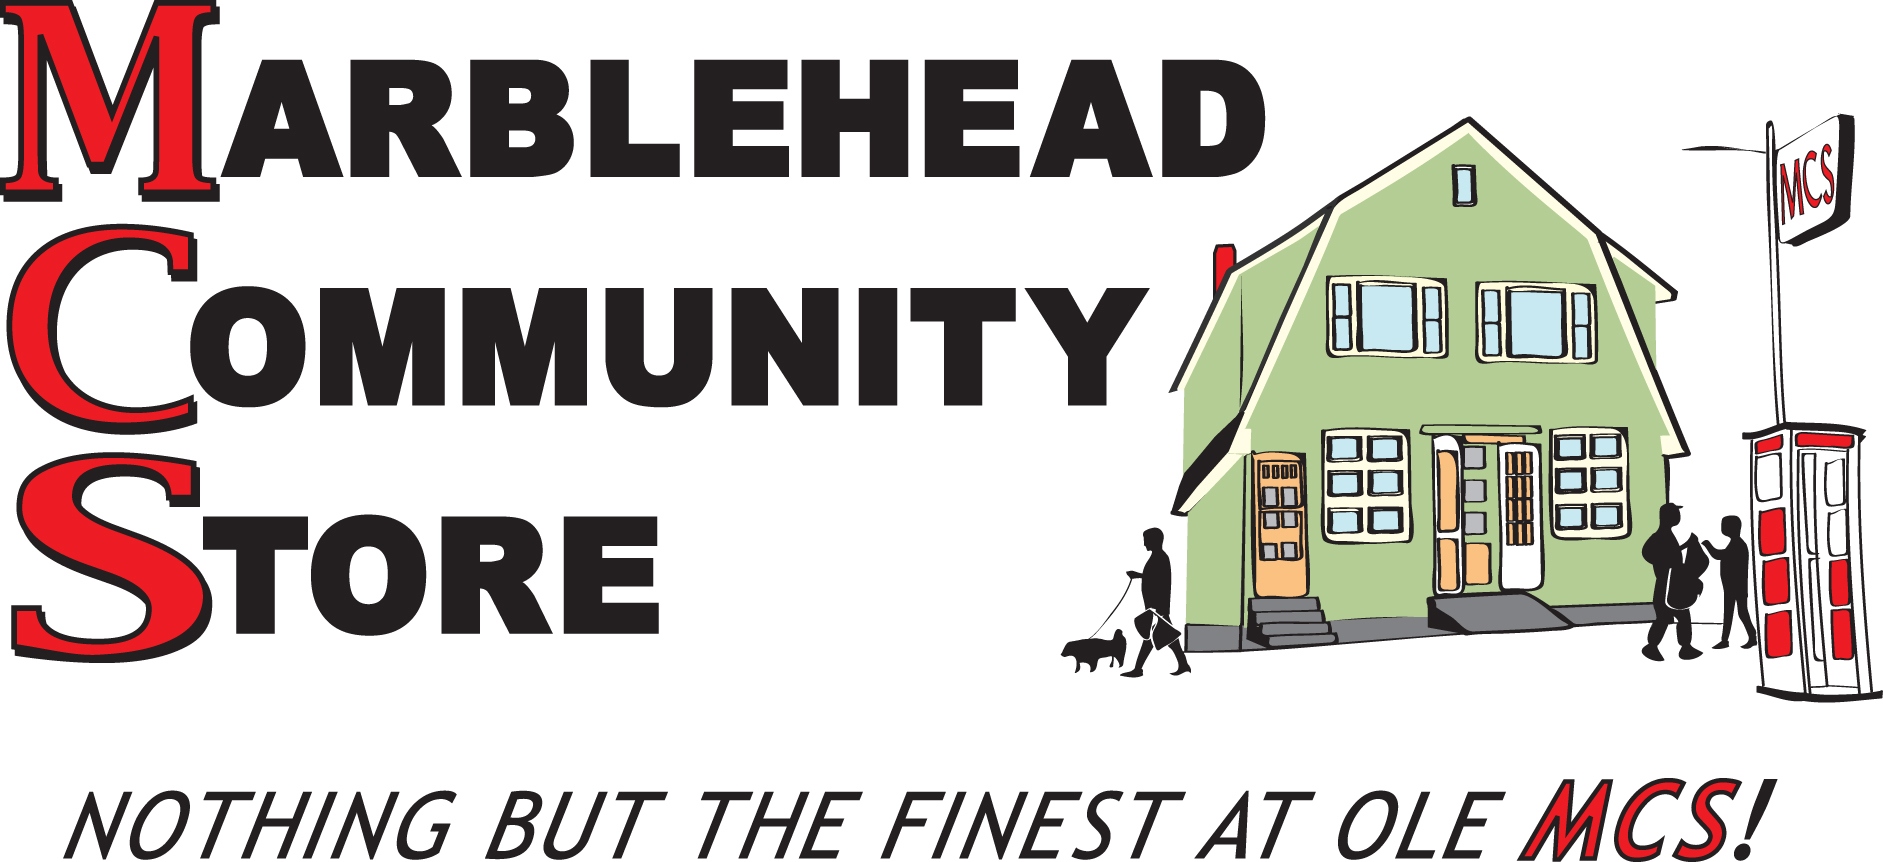 Marblehead Community Store Logo